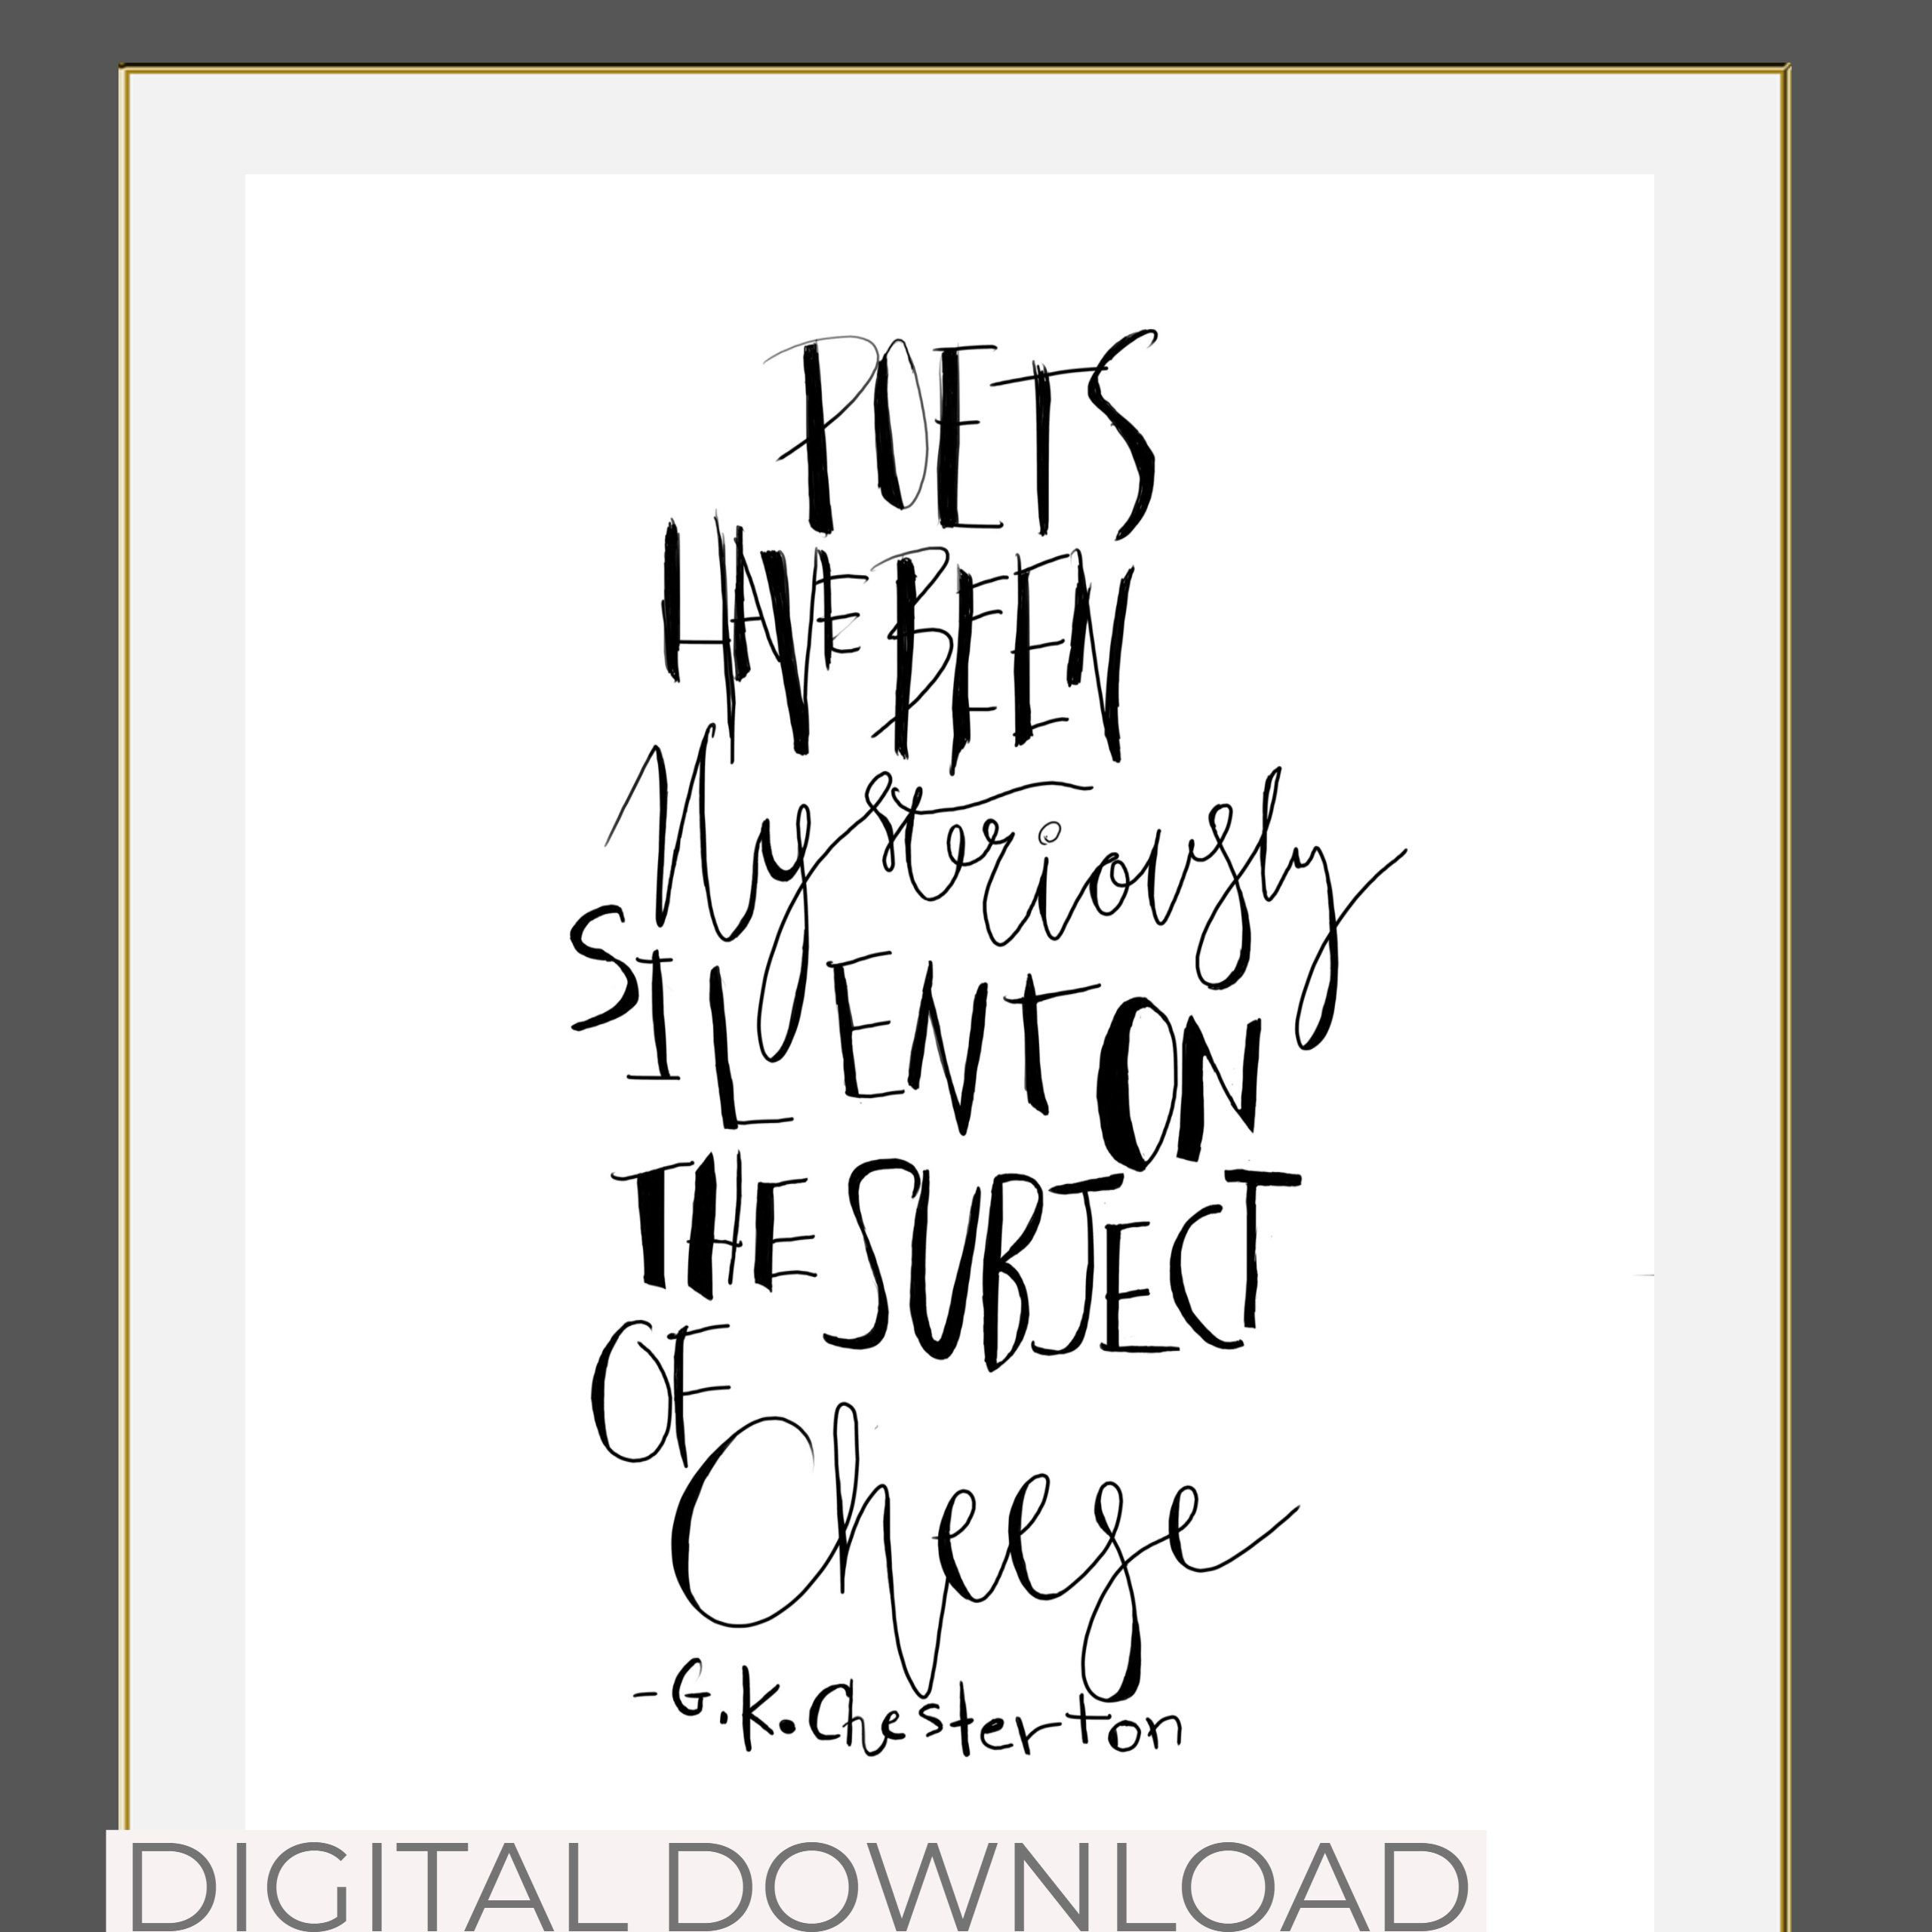 ART QUOTE PRINT/G.K.Chesterton/Cheese/Quote/Hand Lettered